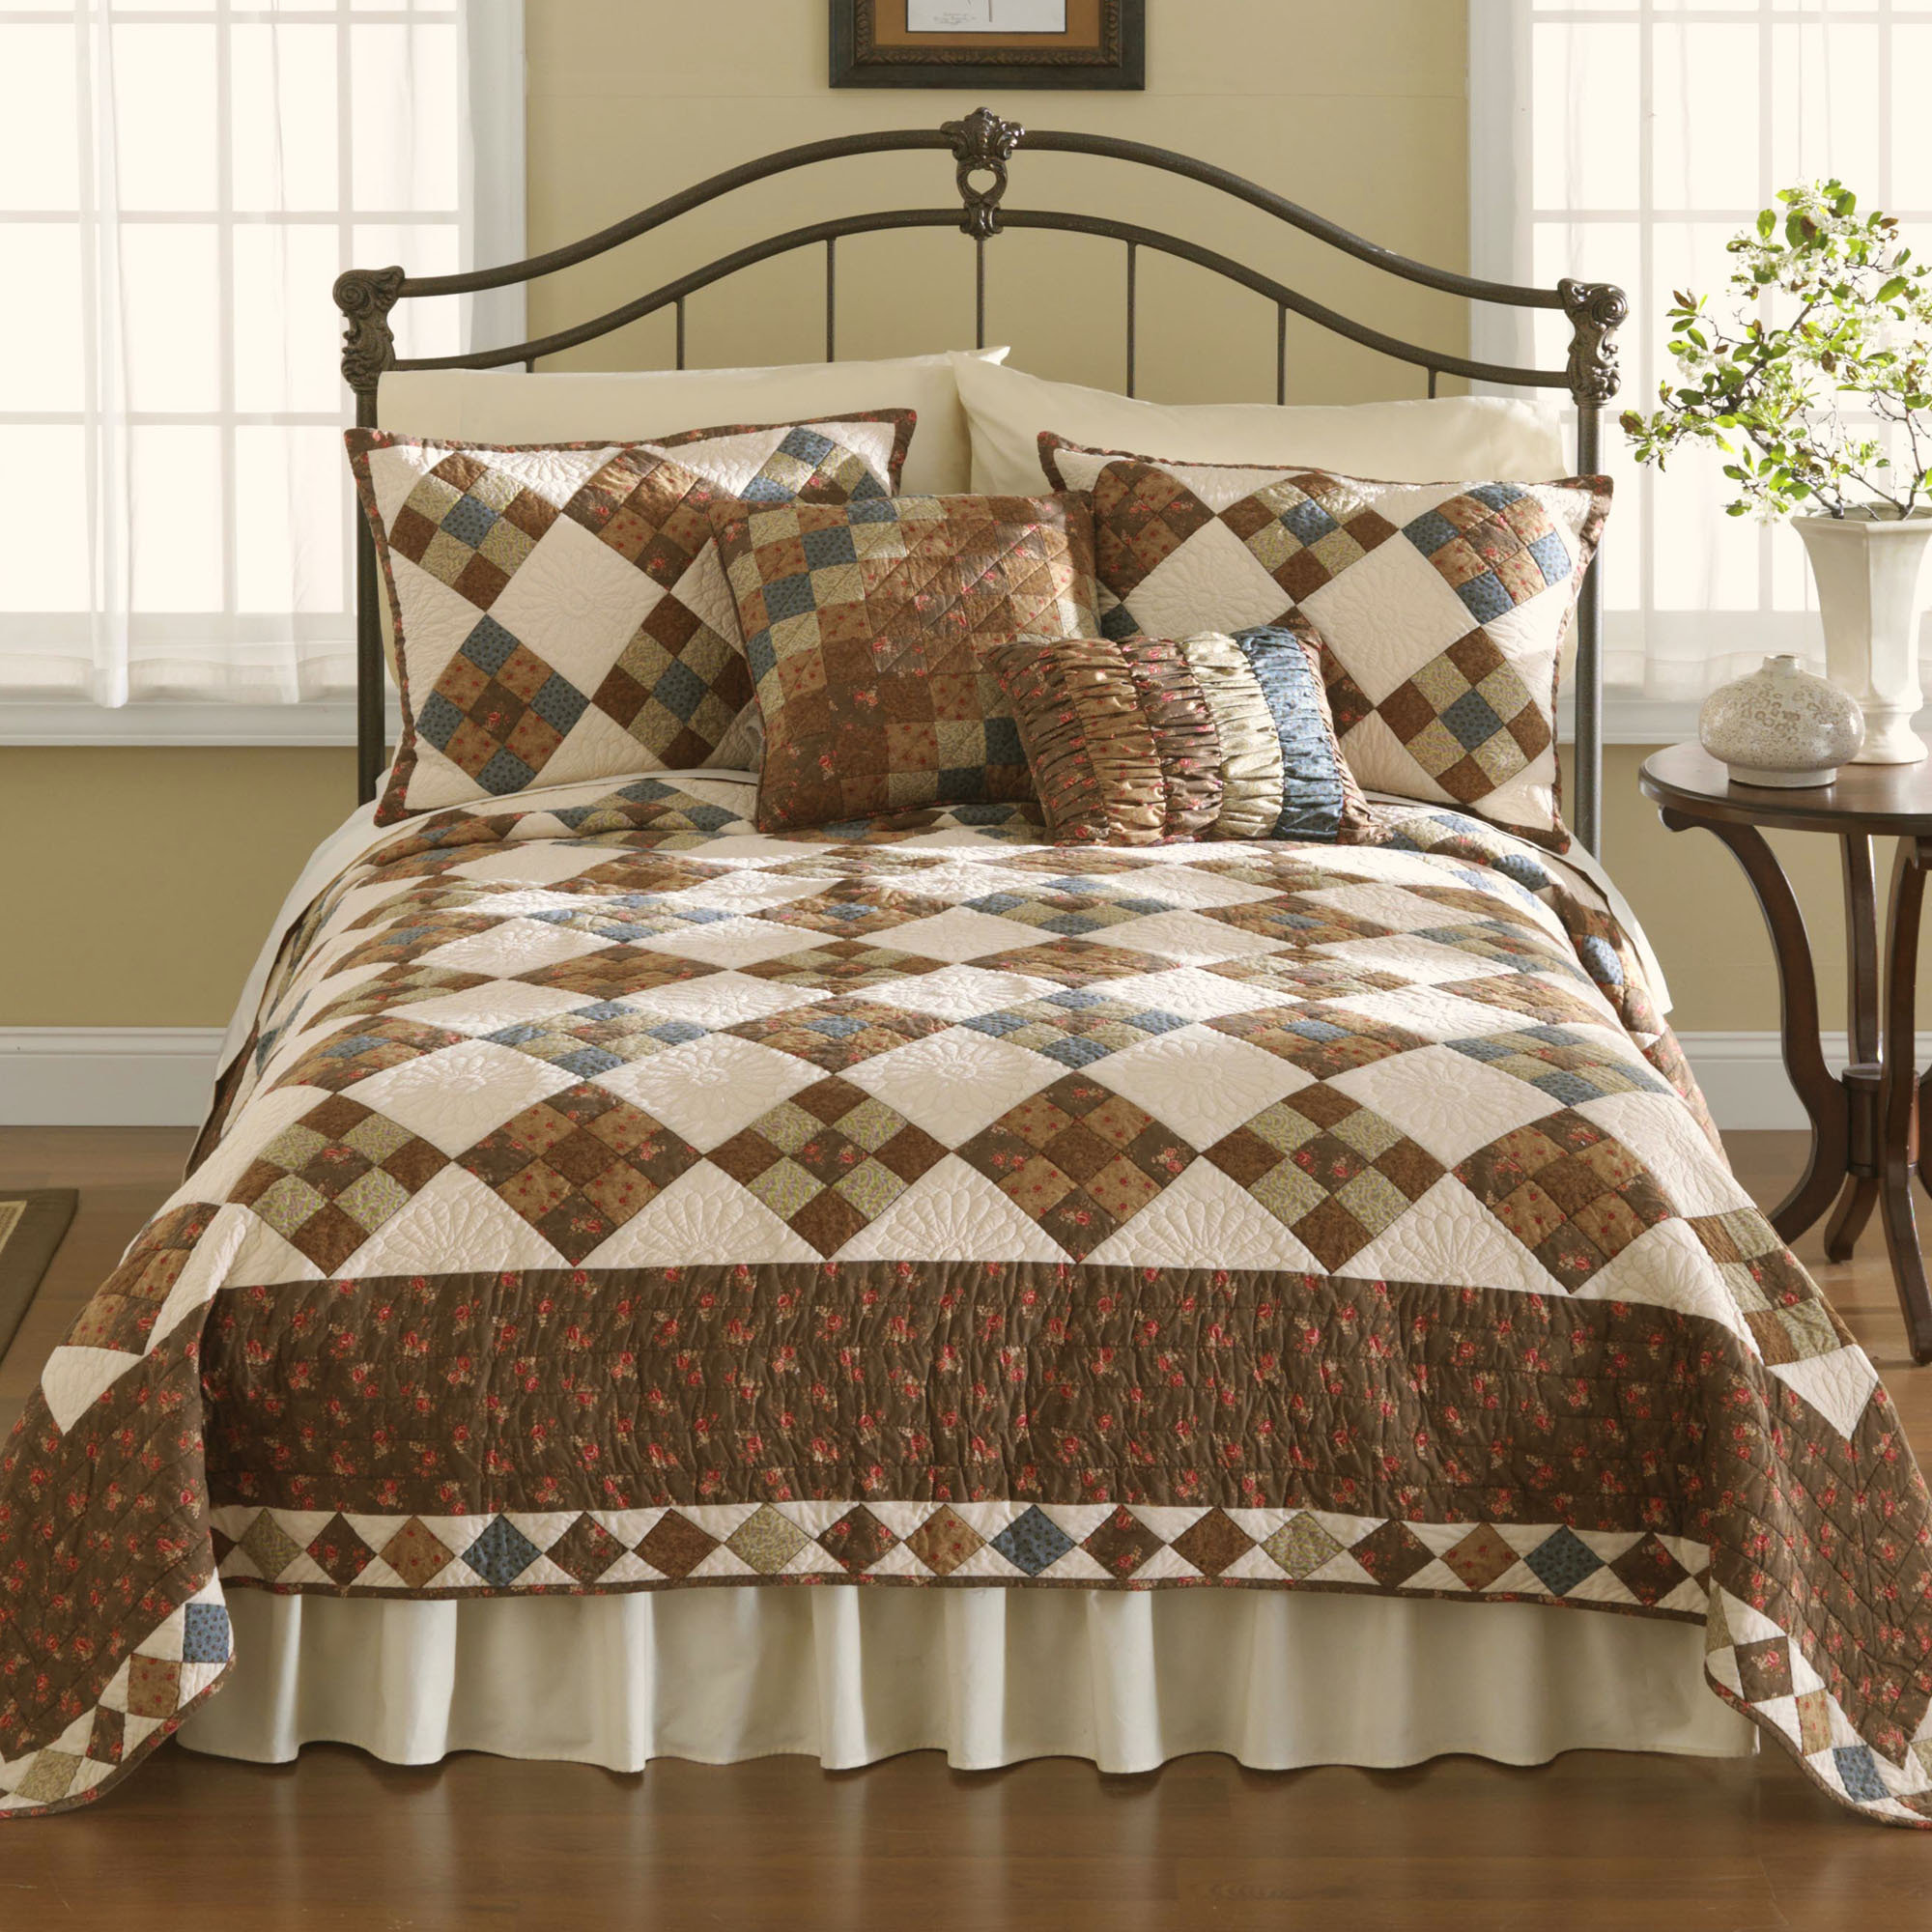 Patchwork bed sheets patterns - P023 001